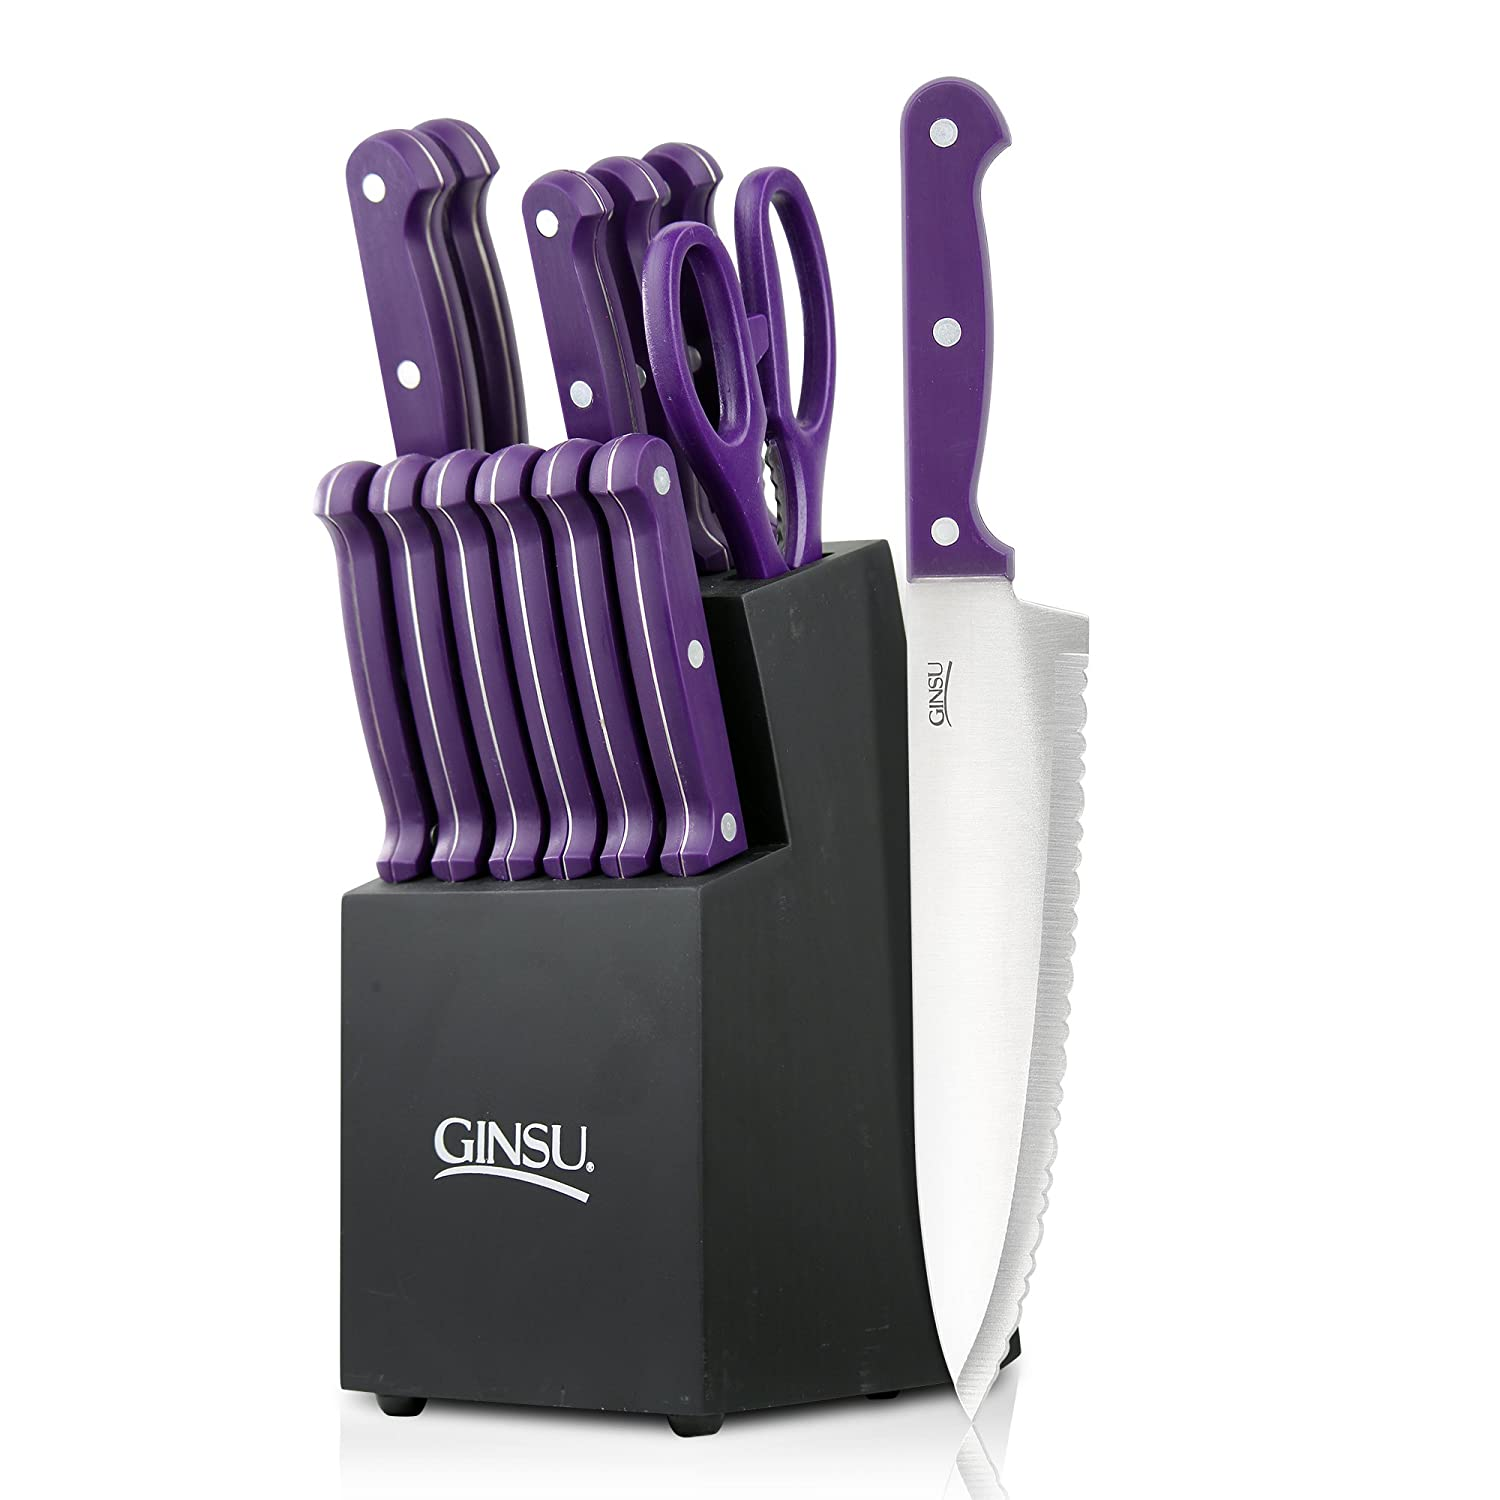 Ginsu Essential Series 14-Piece Stainless Steel Serrated Knife Set – Cutlery Set with Purple Kitchen Knives in a Black Block, 03891DS